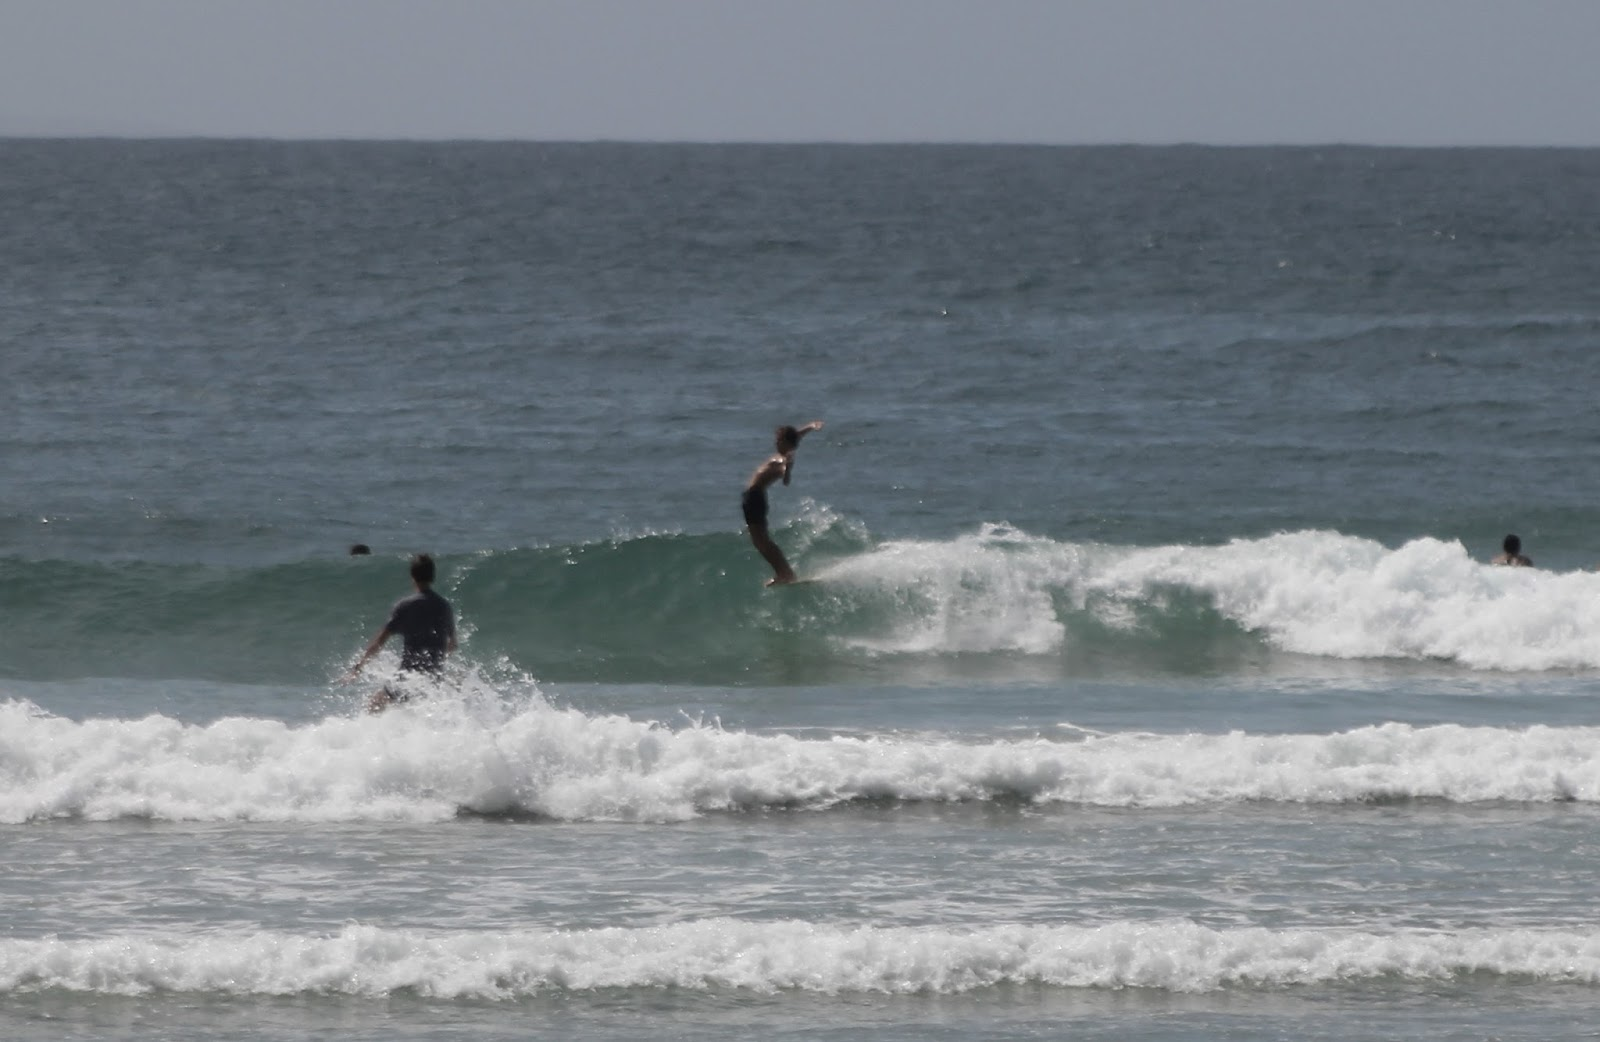 11-03-2016-australia-siebert-surfboards-12